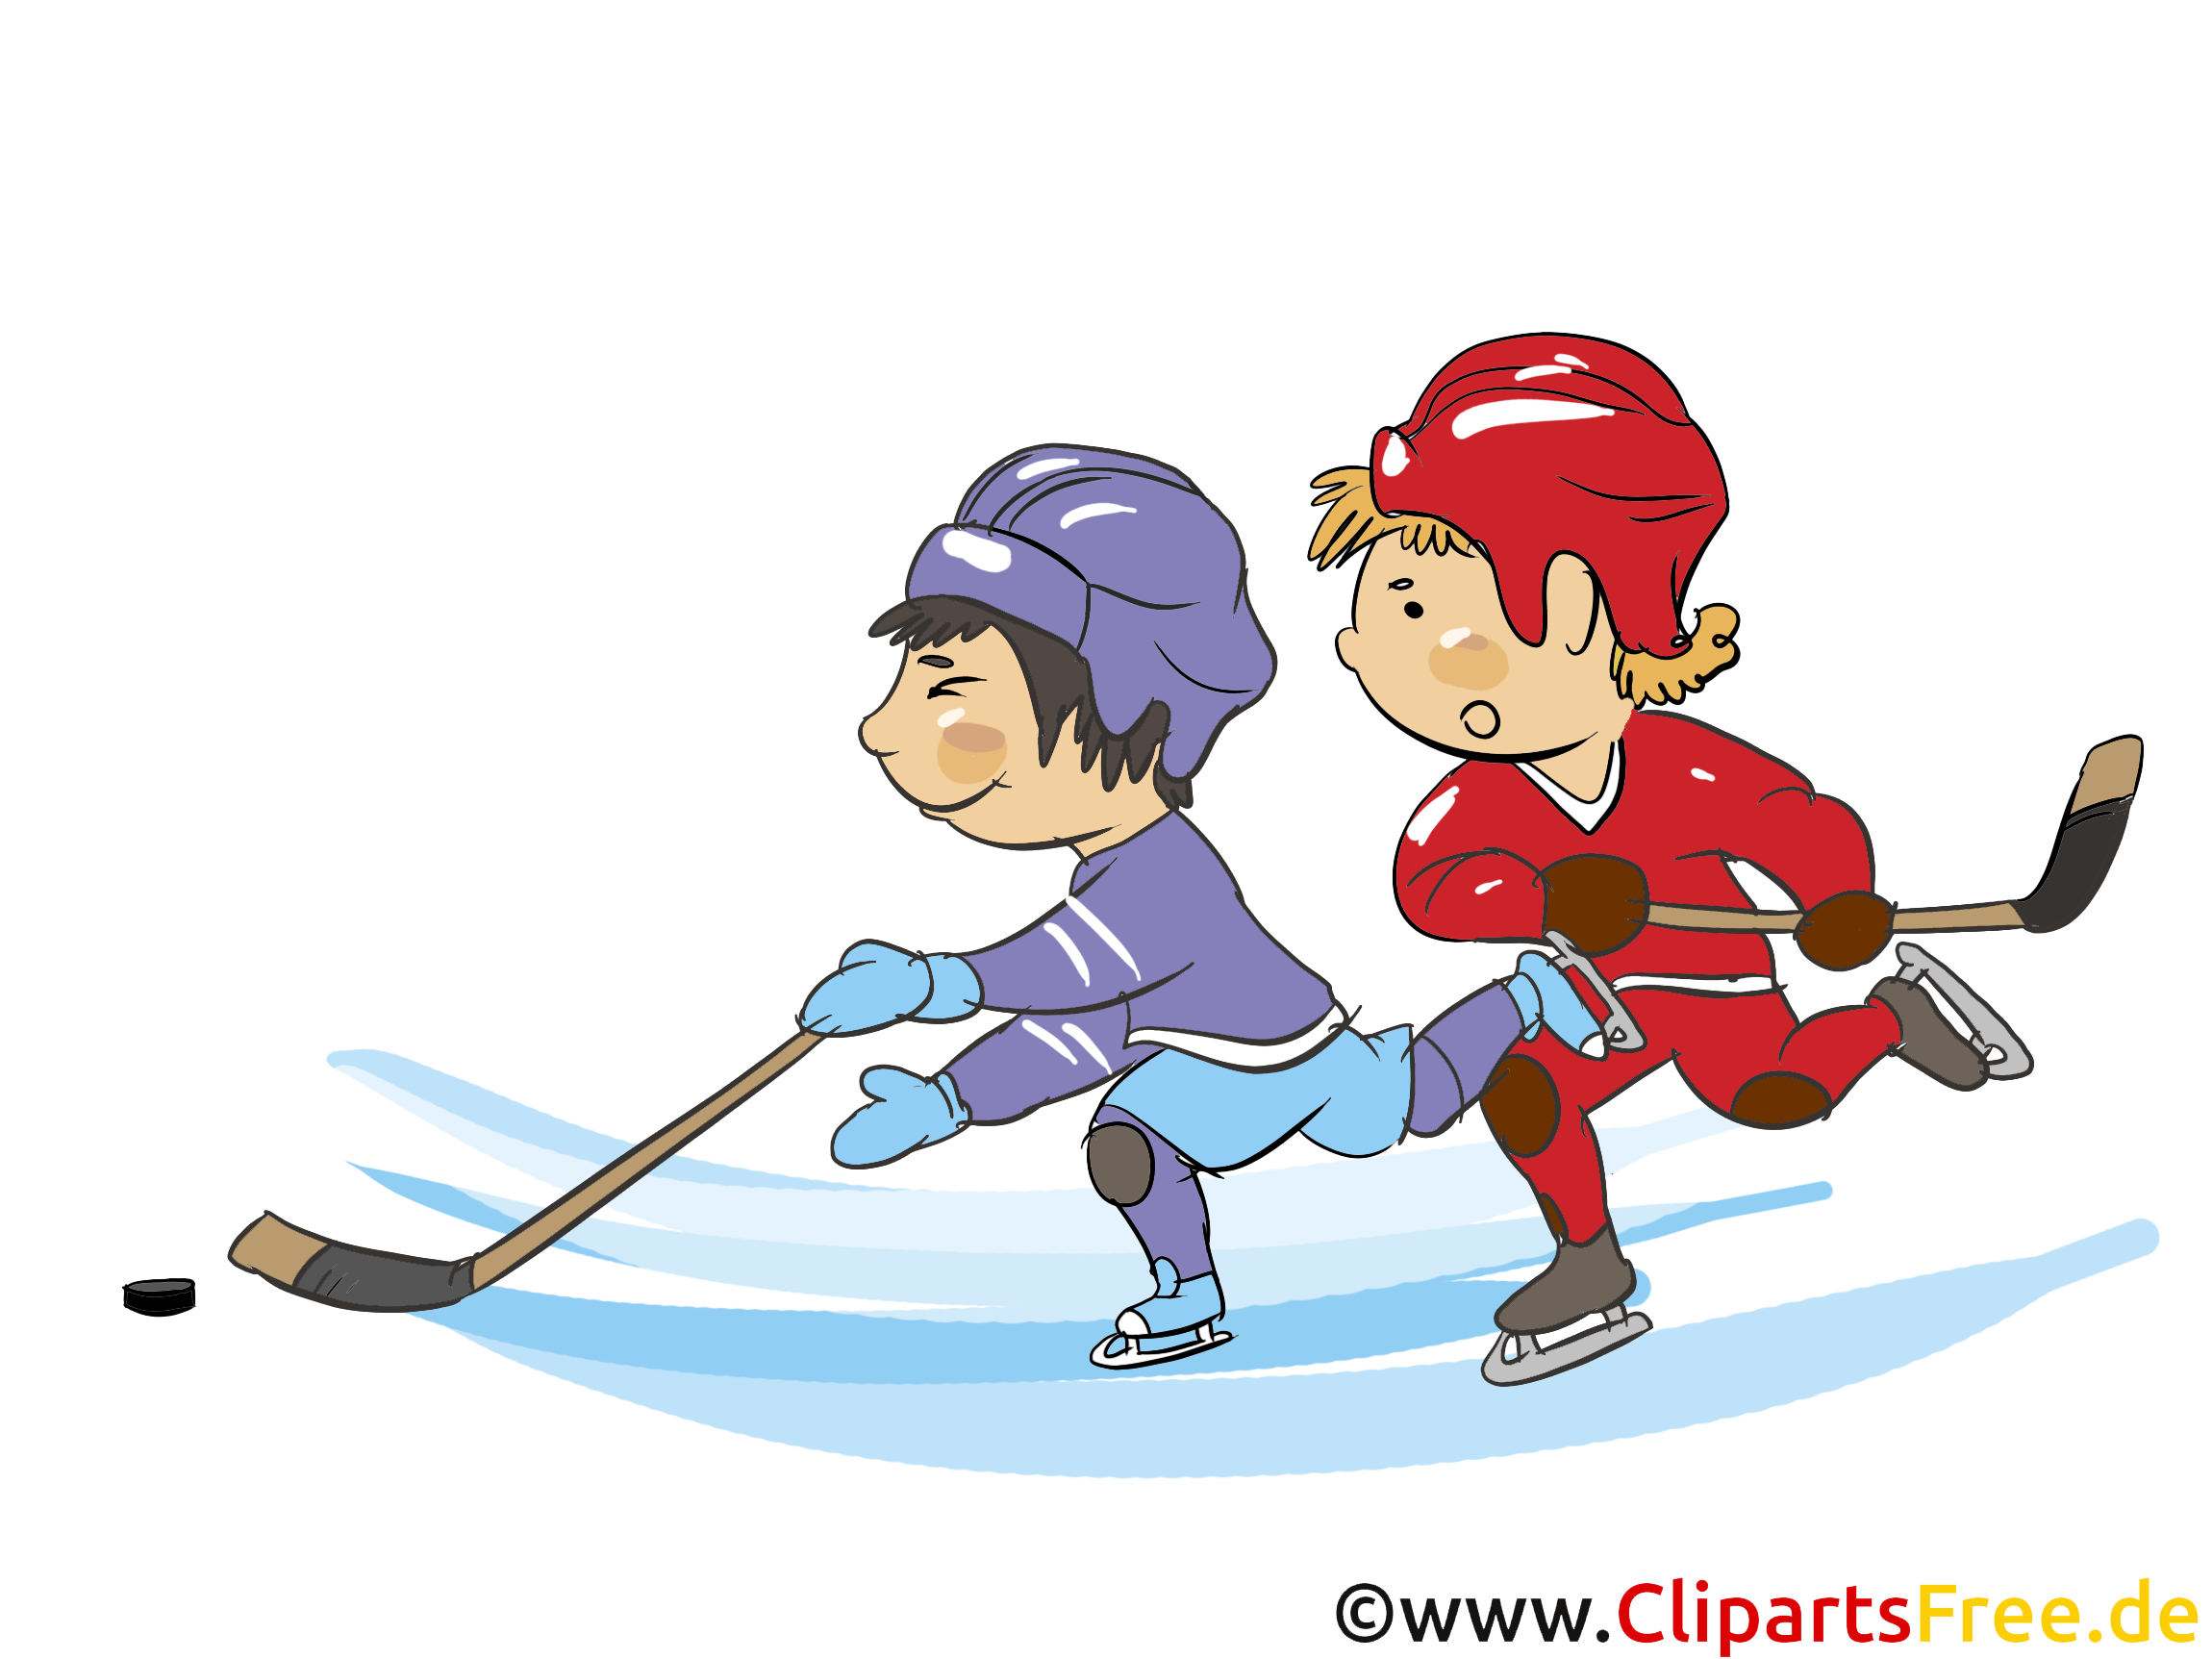 Hockey dessin gratuit t l charger hockey sur glace dessin picture image graphic clip art - Dessins gratuits a telecharger ...